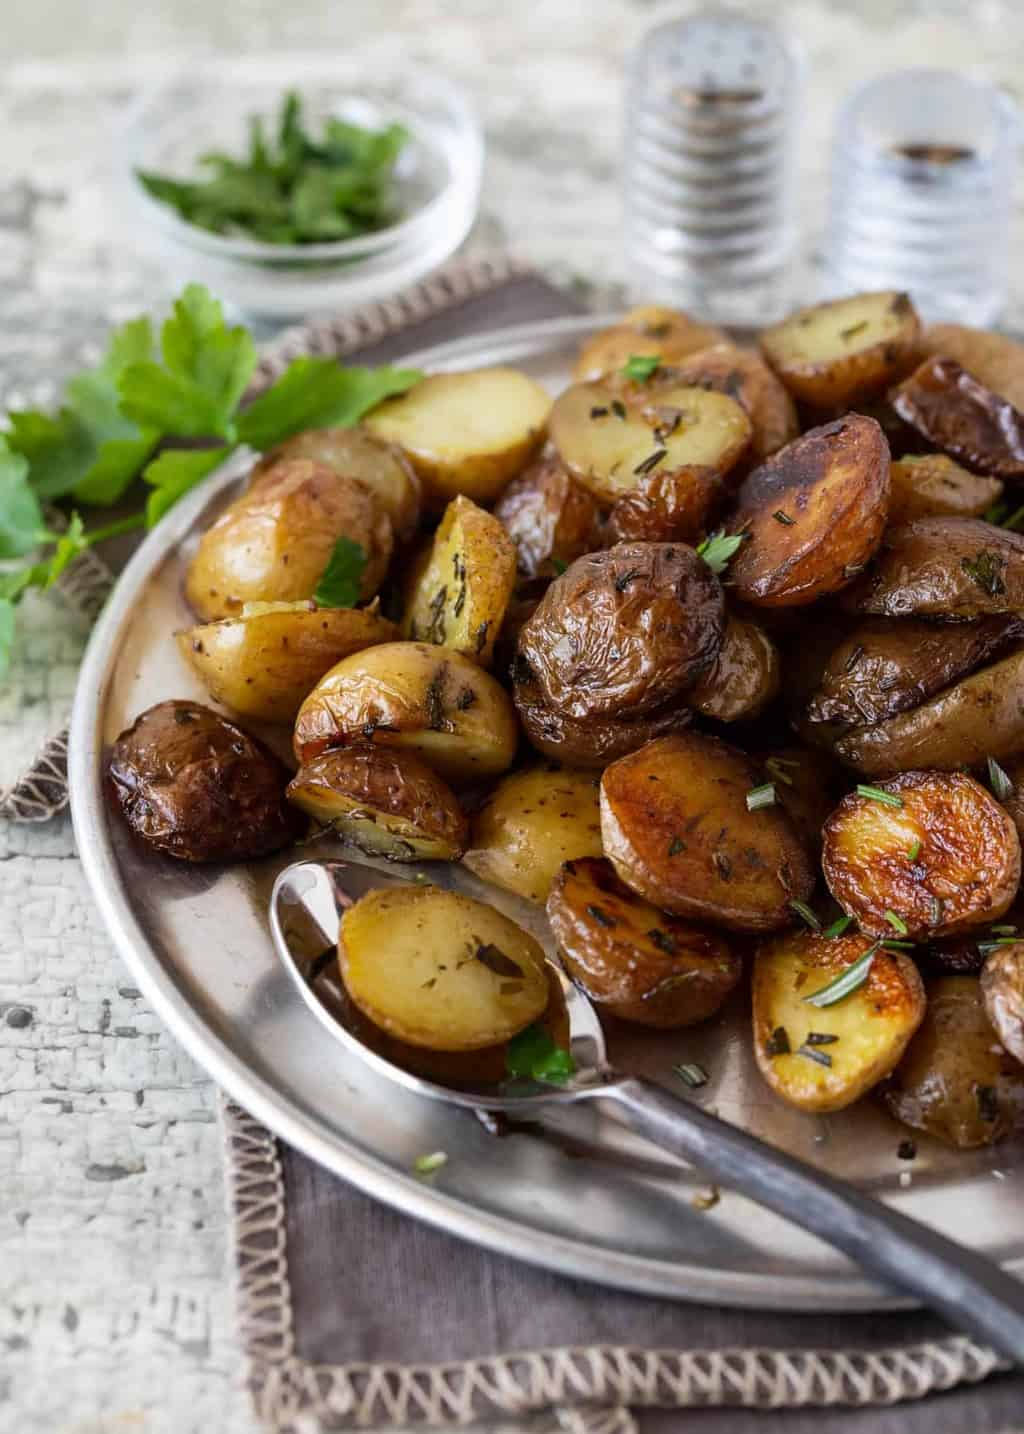 Silver platter full of Herbed Grilled Potatoes in Foil. Garnished with fresh parsley, fresh rosemary, salt and pepper.